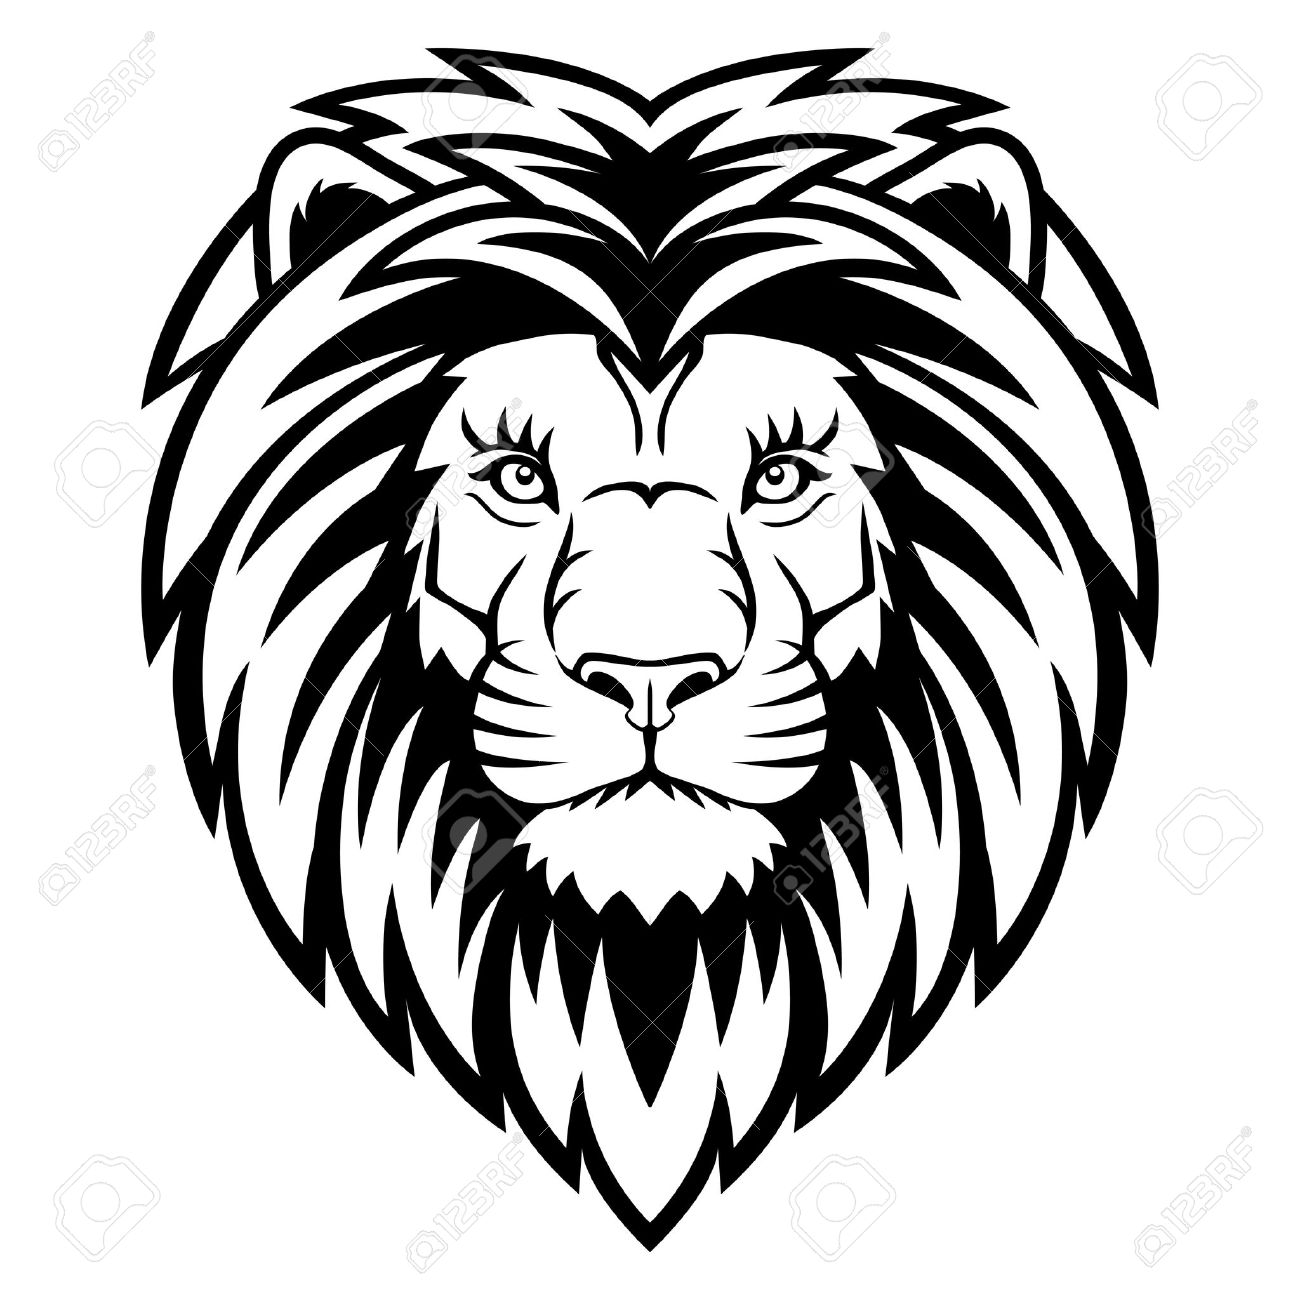 a lion head logo in black and white this is vector illustration rh 123rf com lion head logo template lion head logo clothing